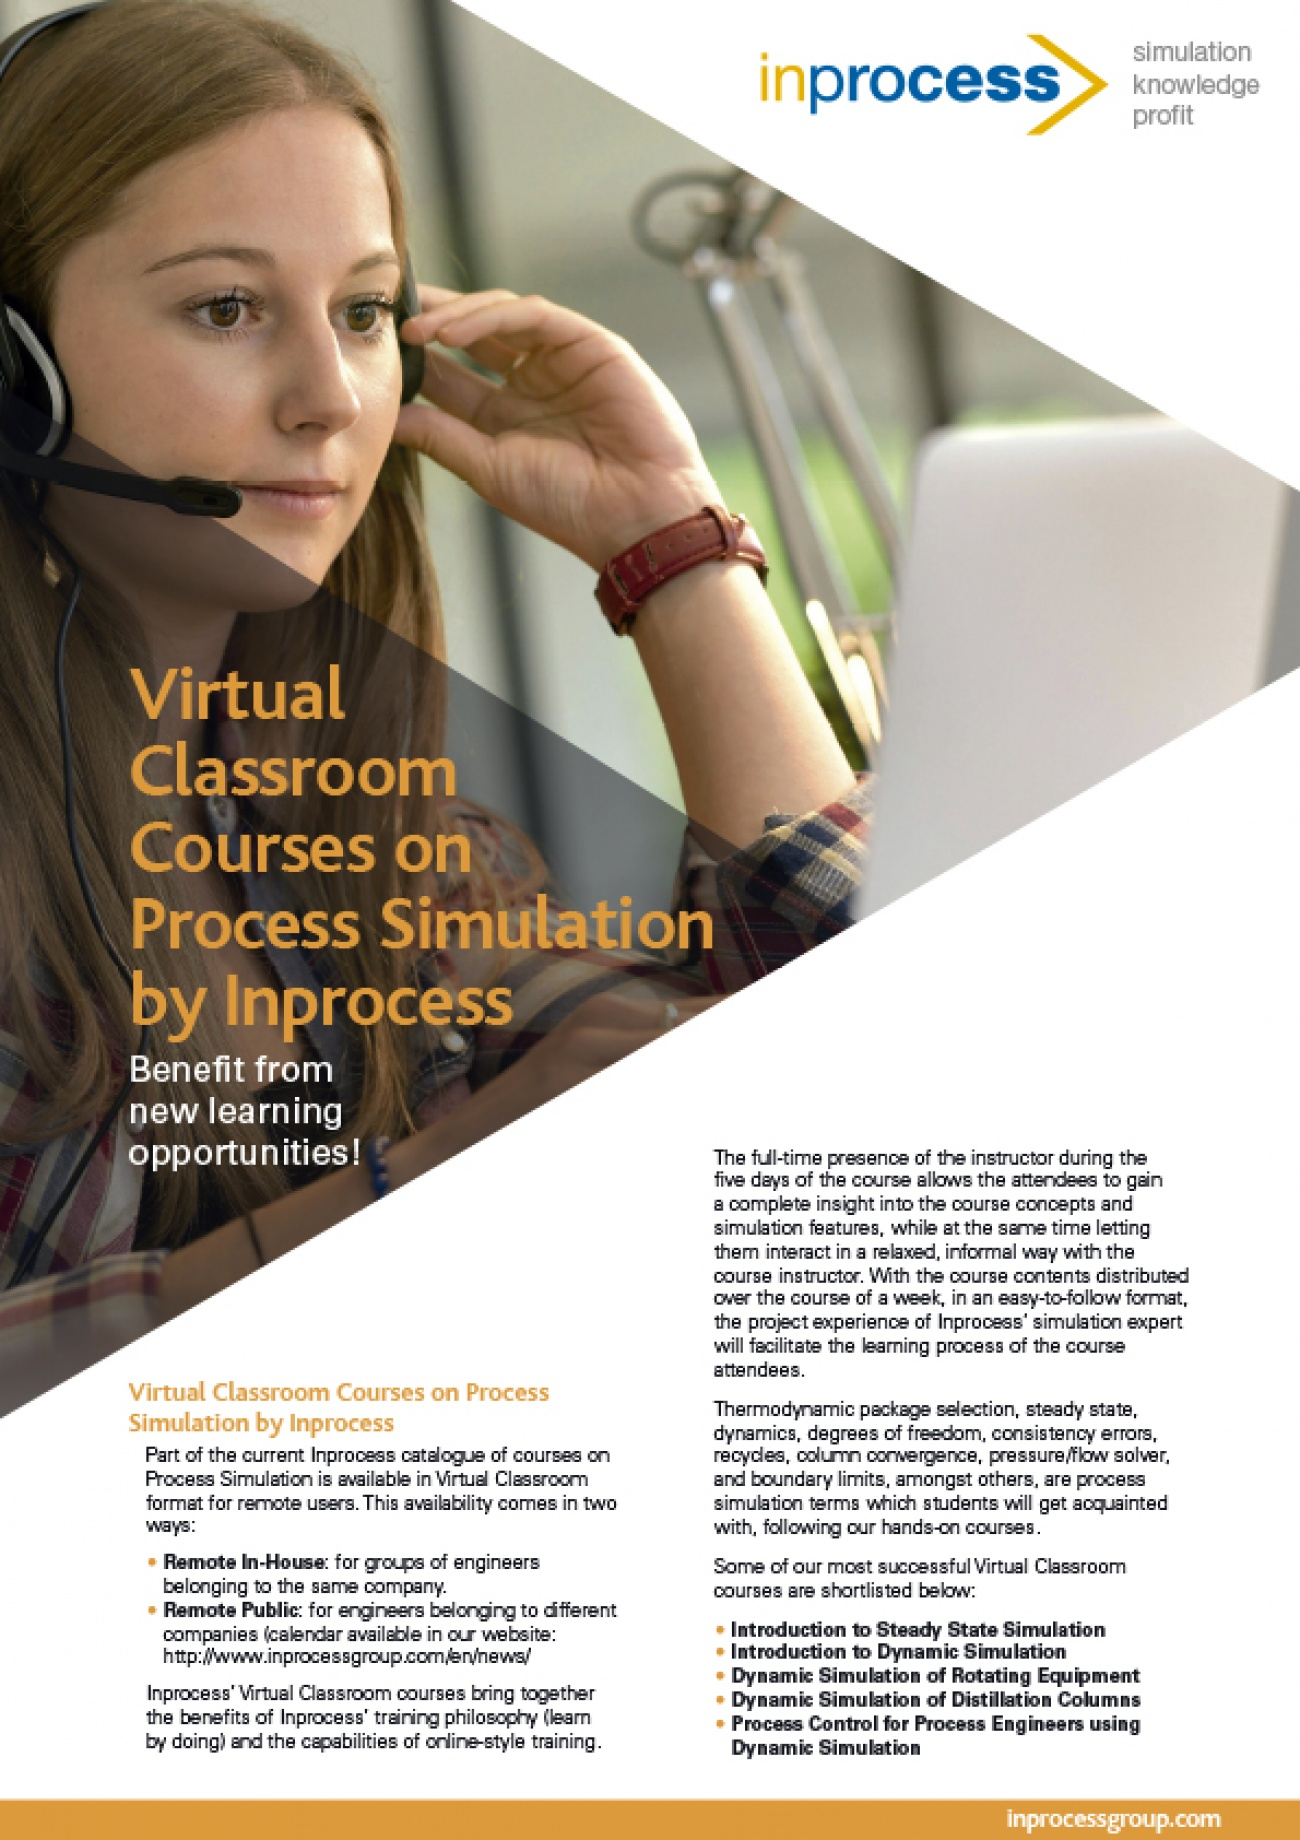 Virtual Classroom Courses on Process Simulation